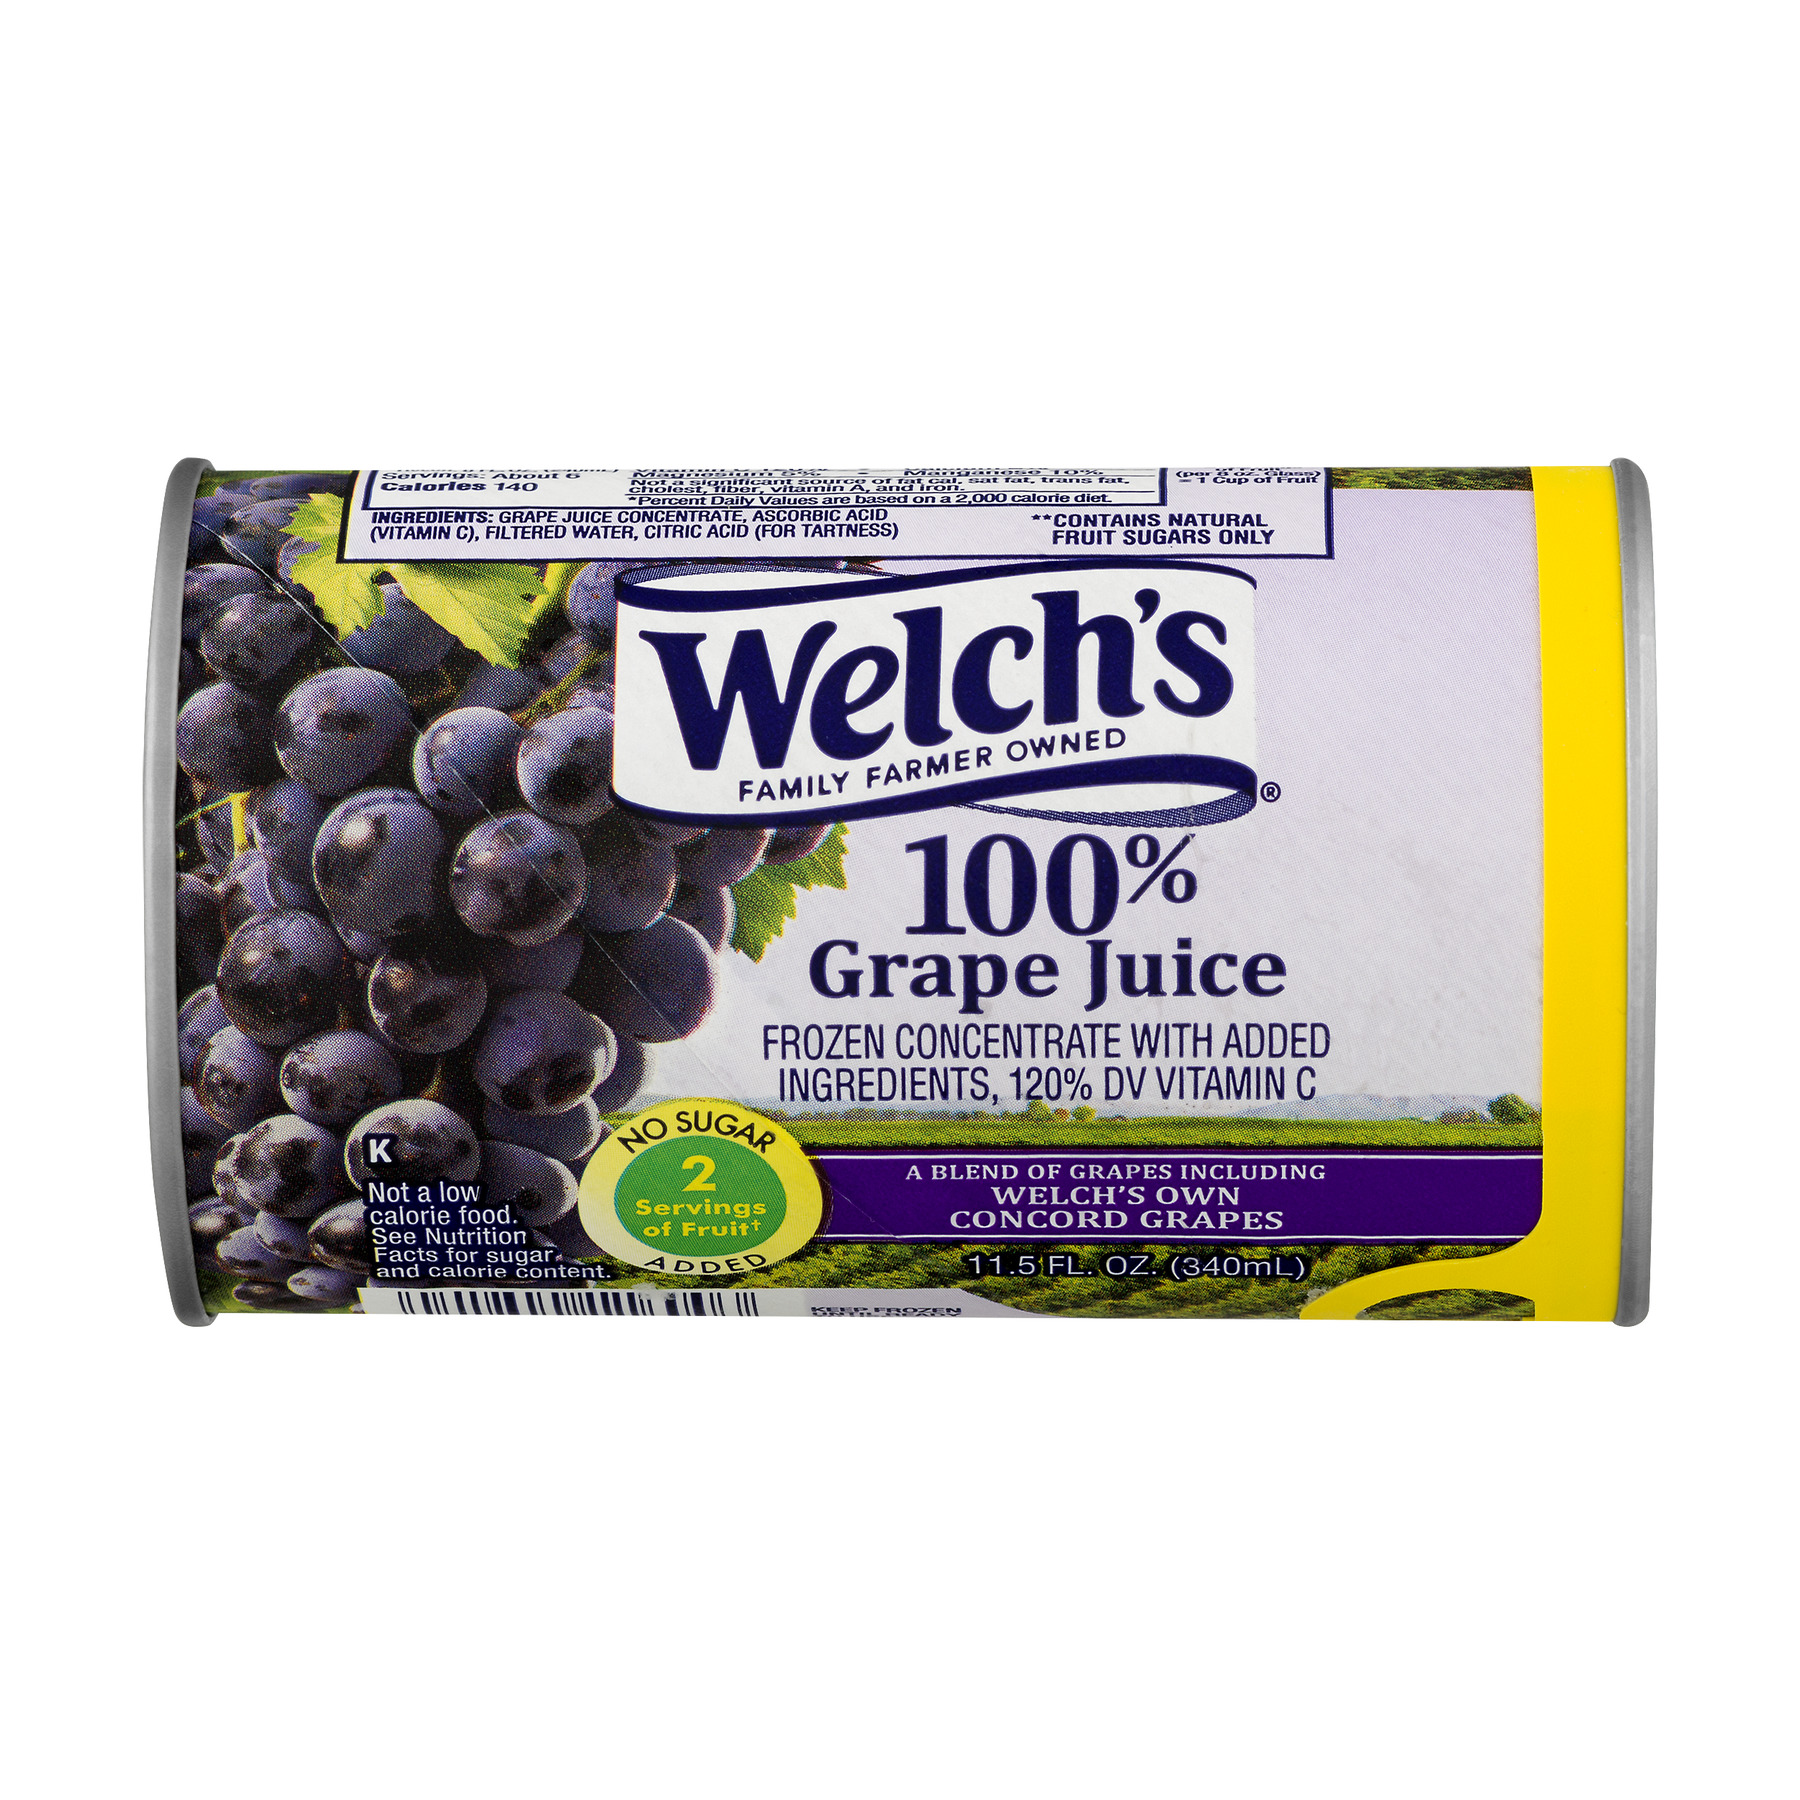 Welch's 100% Grape Juice, 11.5 fl oz